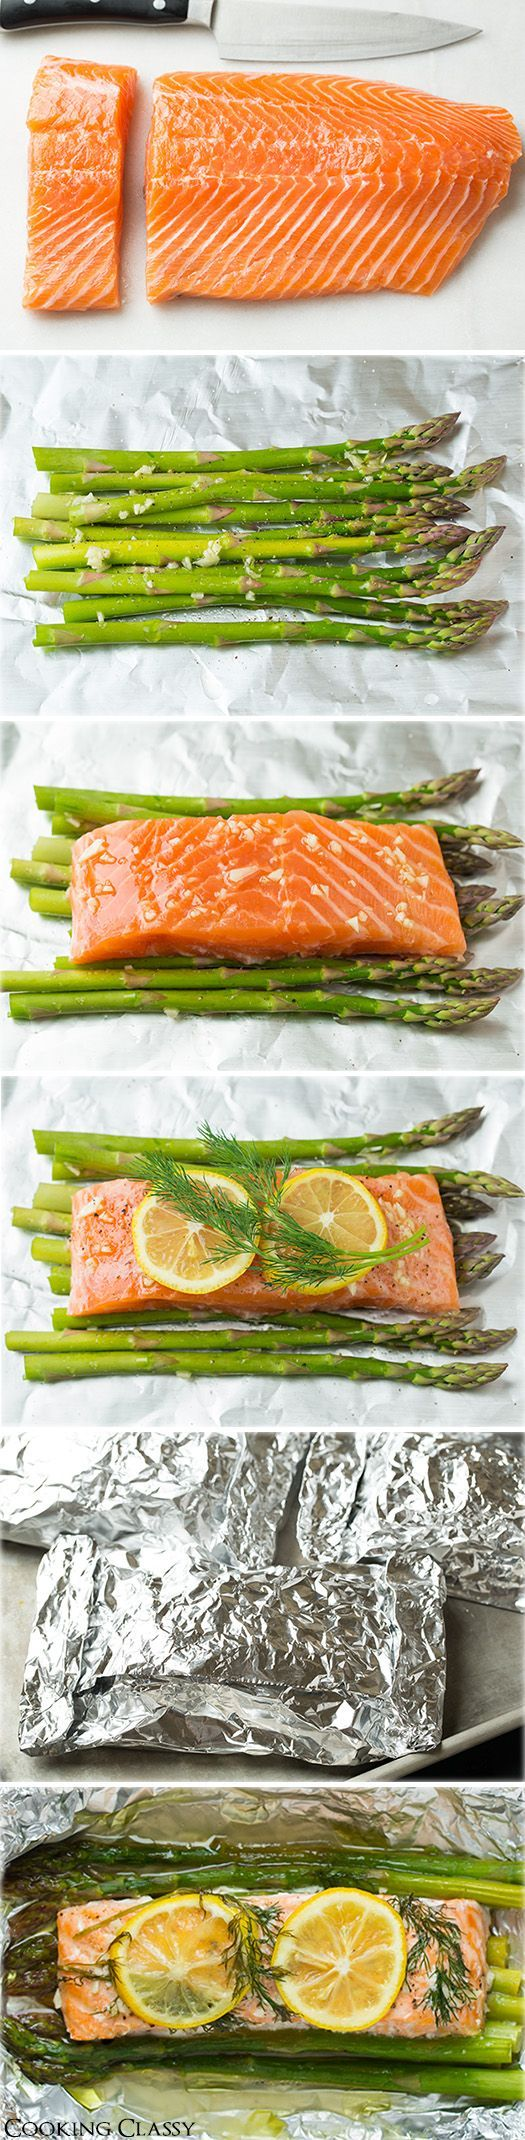 sunglasses Salmon online Asparagus Salmon and Salmon  Foil Baked in Asparagus Recipe and Baked rx